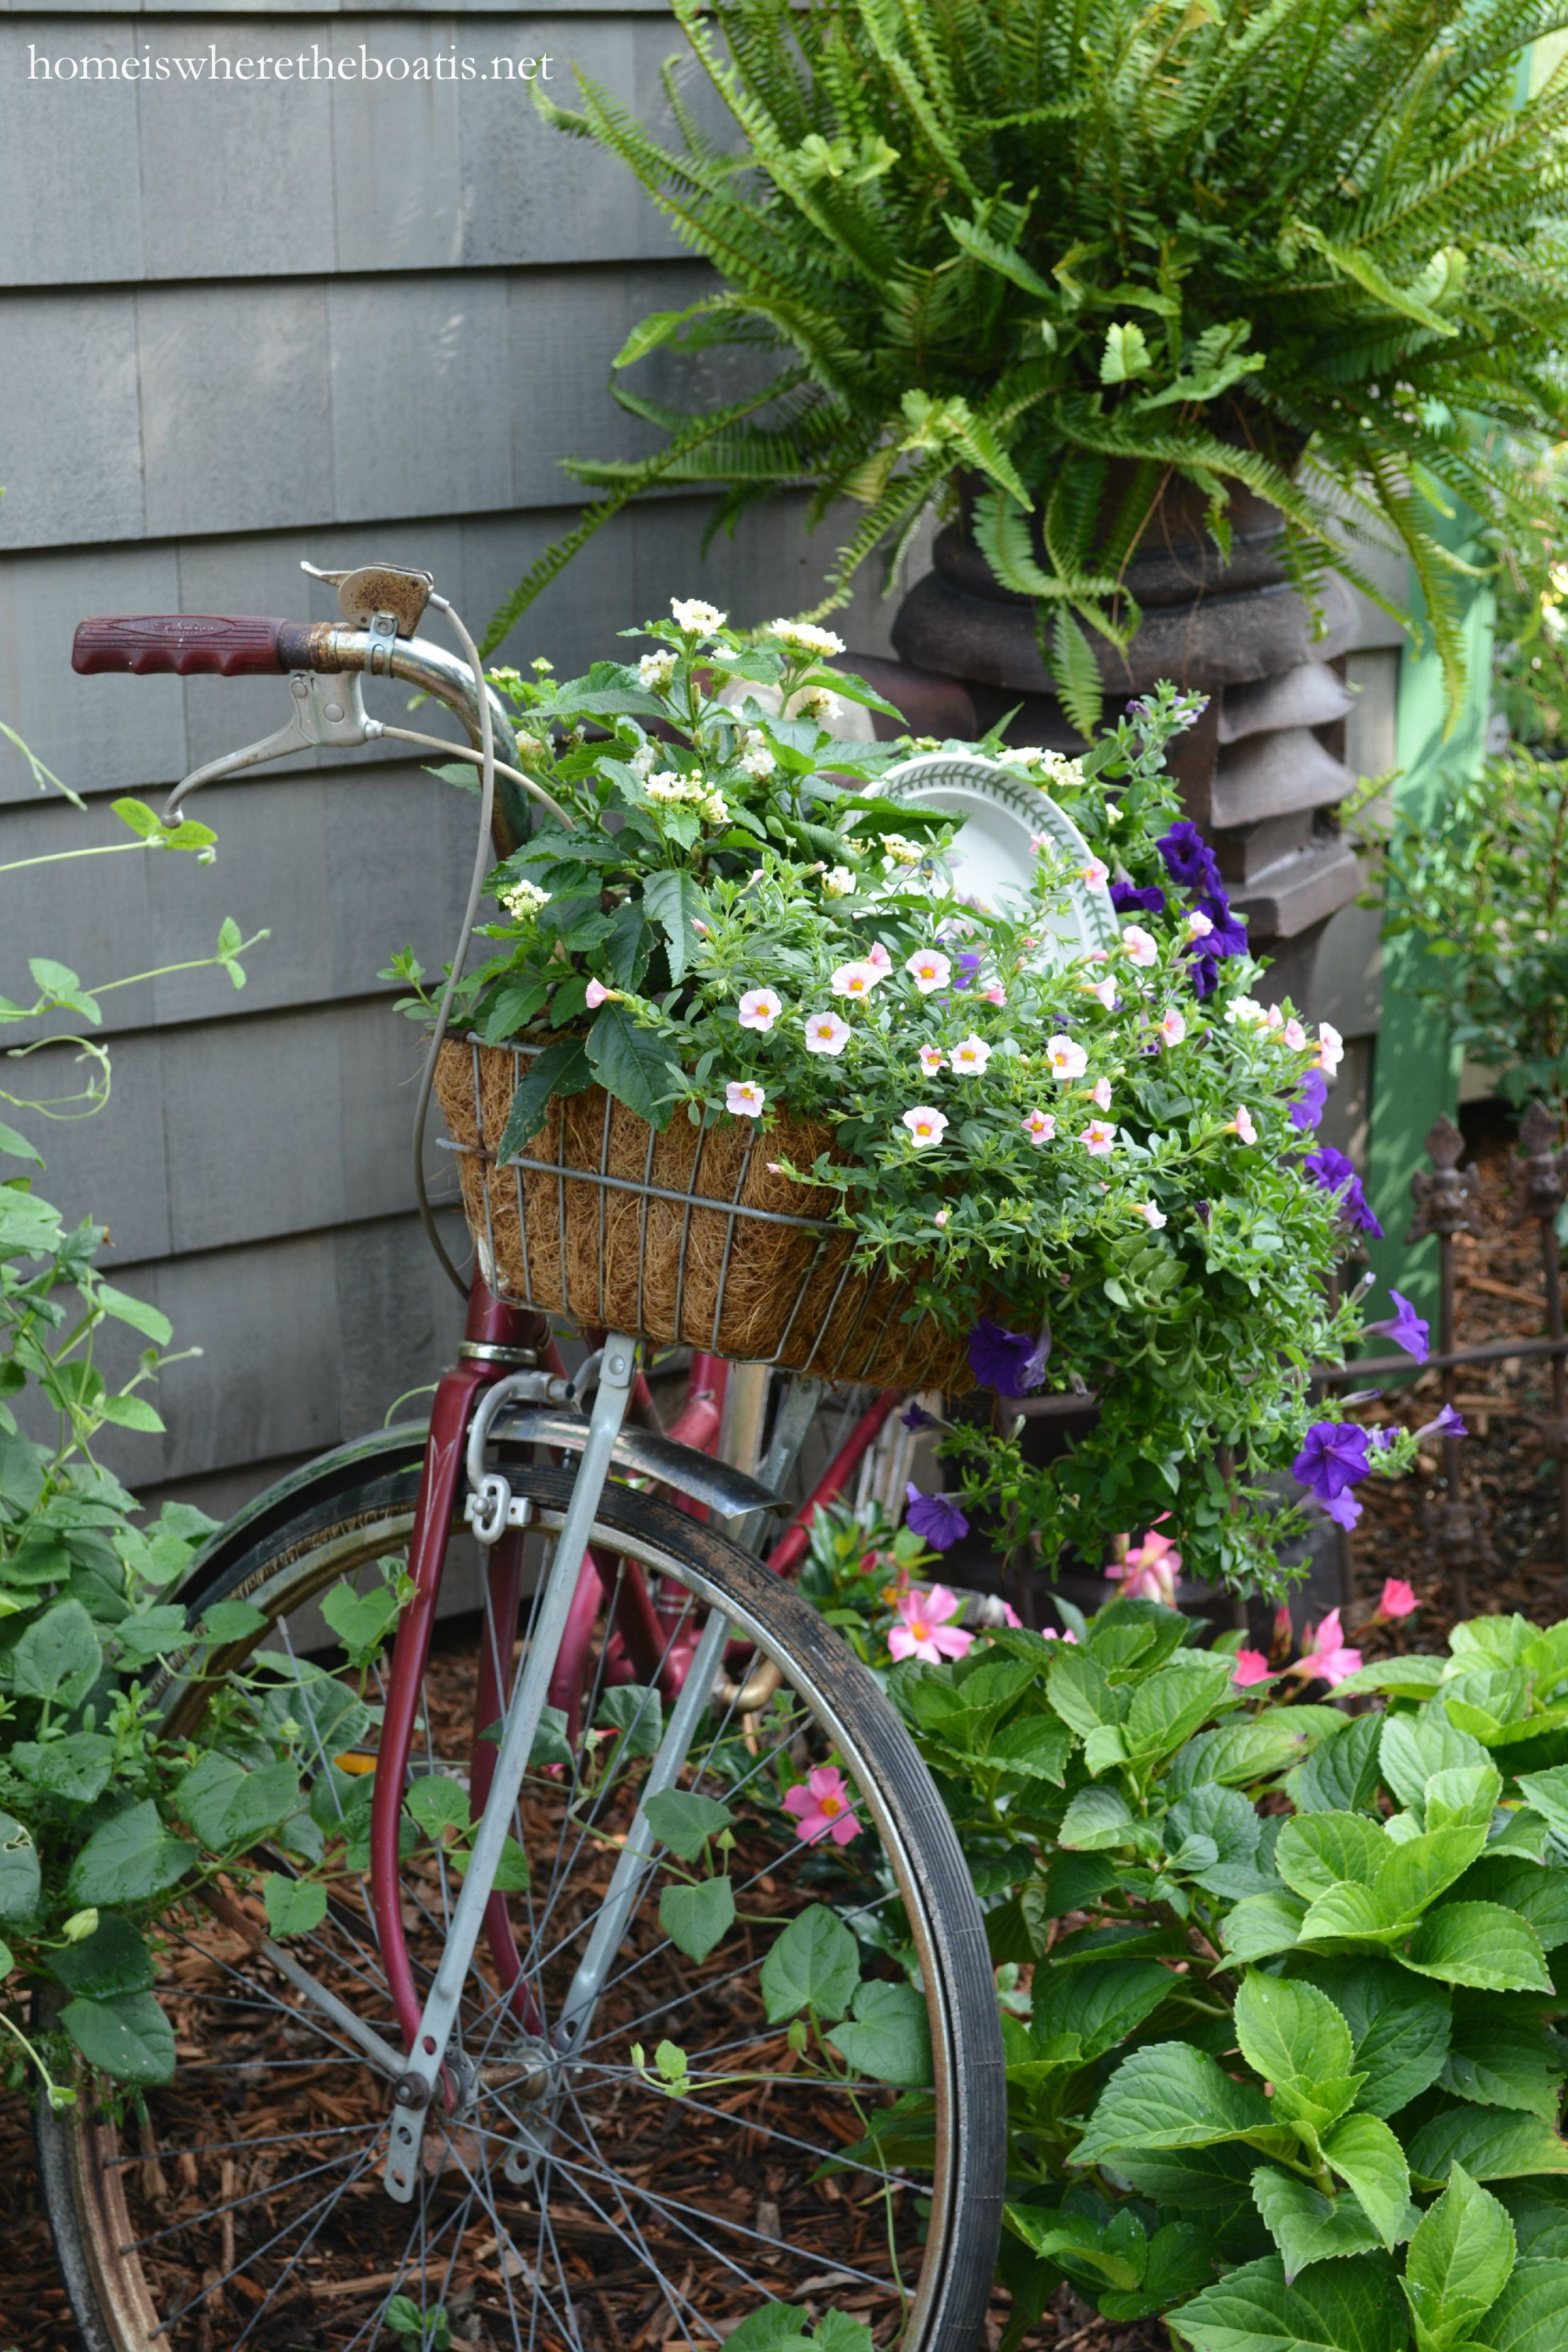 Gardening On Wheels: A Bicycle Built For Planting